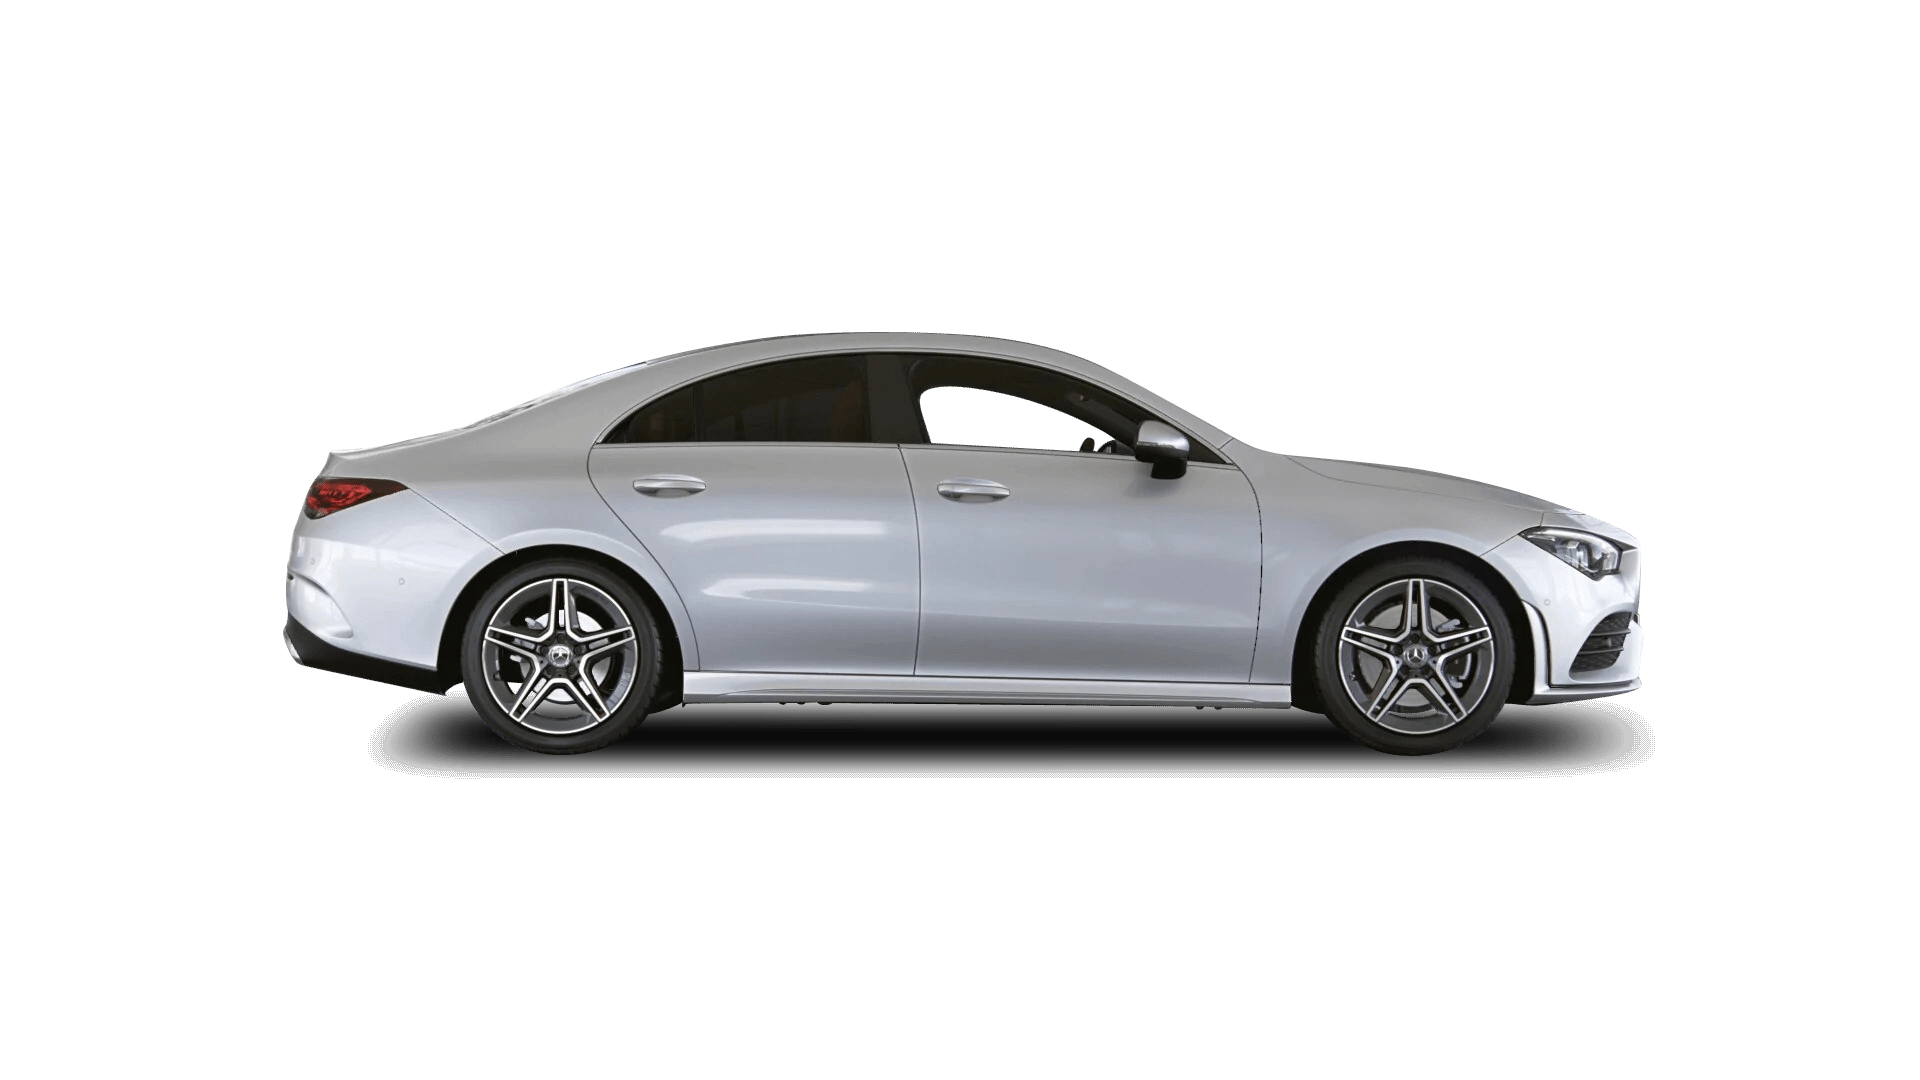 https://bluesky-cogcms.cdn.imgeng.in/media/35269/cla-coupe-amg-line-executive.png